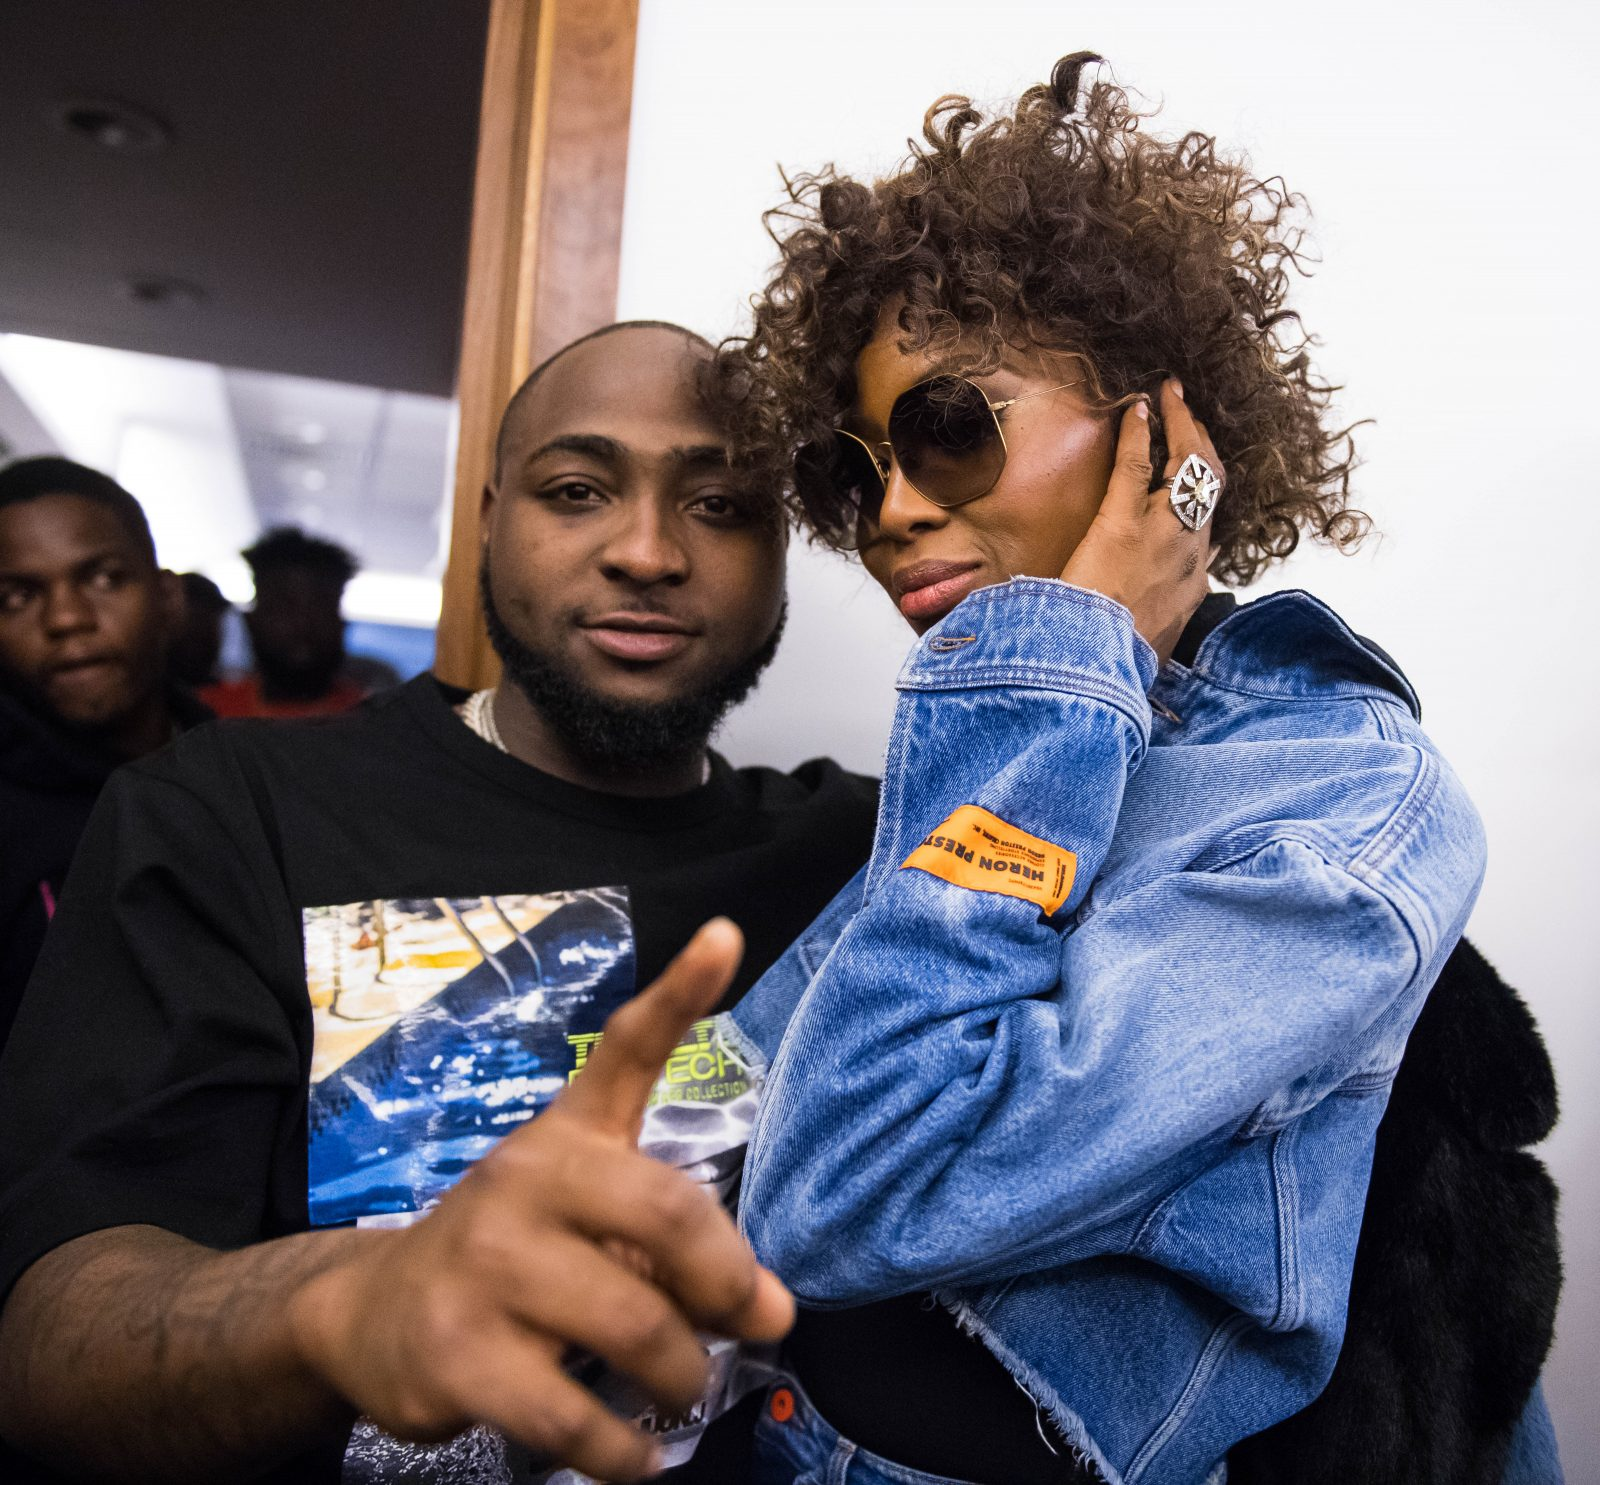 London, United Kingdom.  January 27, 2019. Supermodel, Naomi Campbell  attends Davido's concert. Davido performs live on stage at  The O2 Arena. Michael Tubi / Alamy Live News